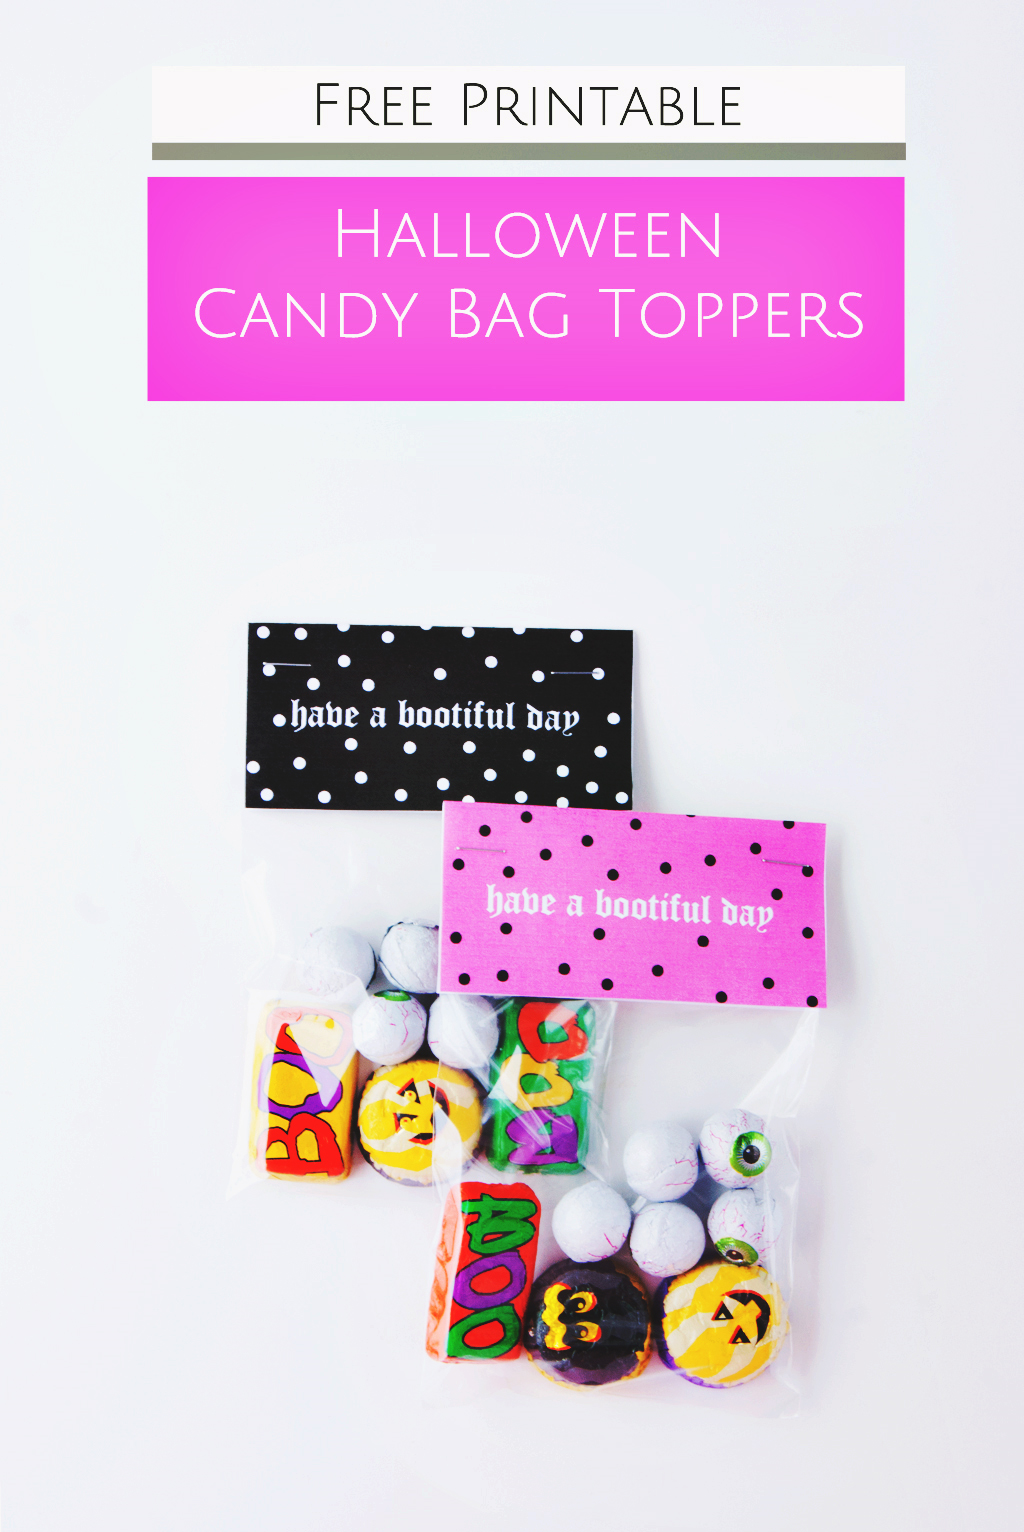 Free Printable - DIY Halloween Candy Bag Toppers